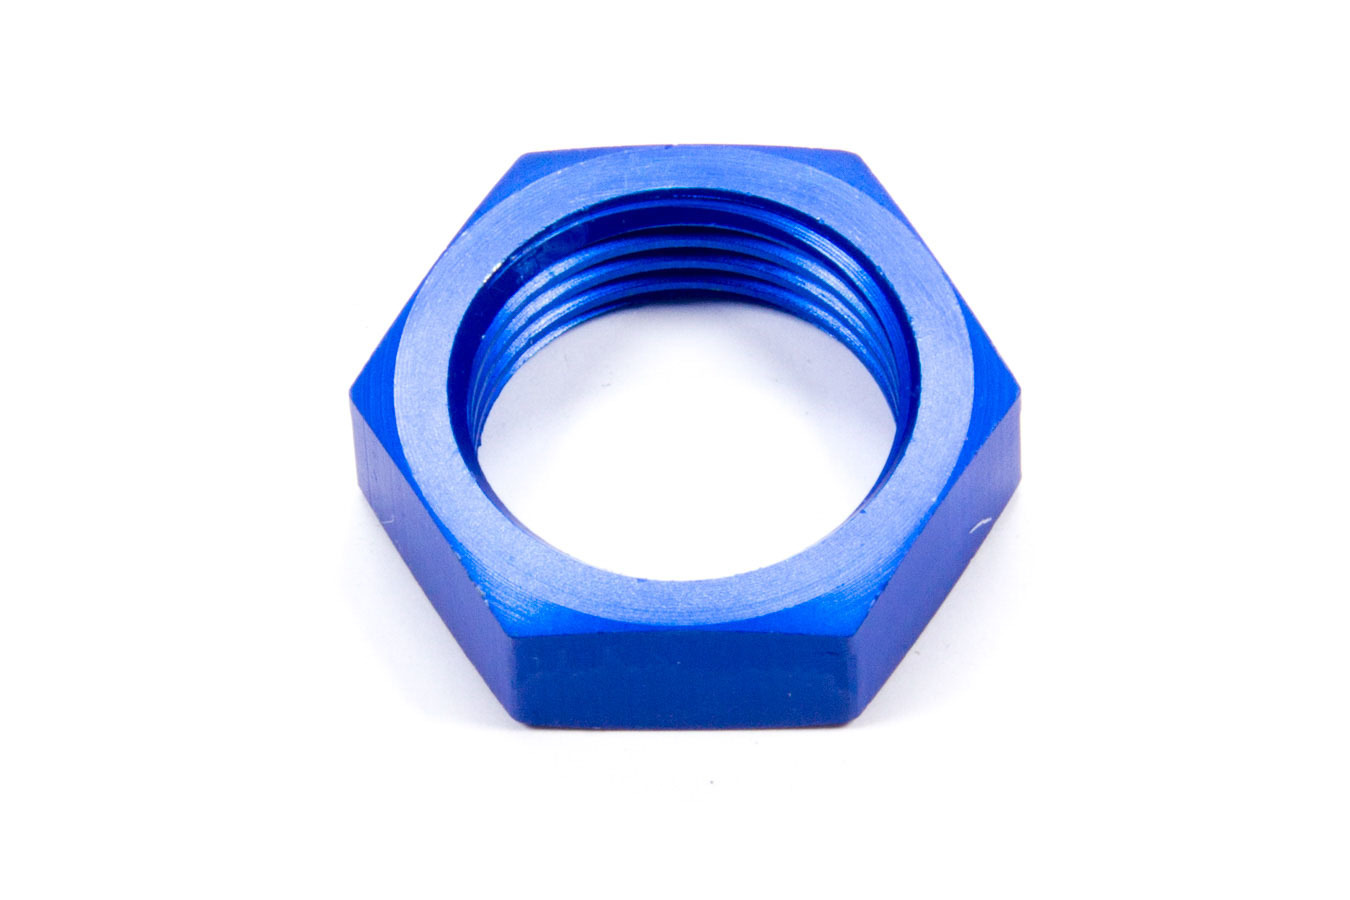 Aeroquip FCM2104 Bulkhead Fitting Nut, 10 AN, Aluminum, Blue Anodize, Each